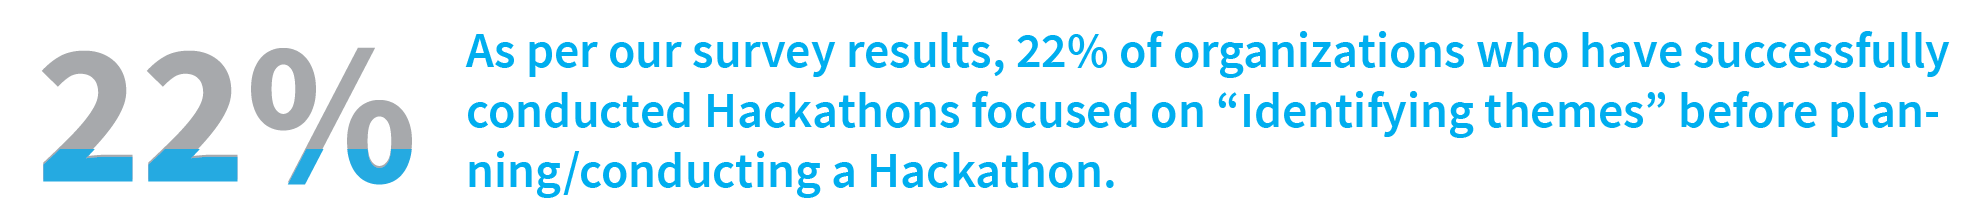 identifying themes in hackathon stats